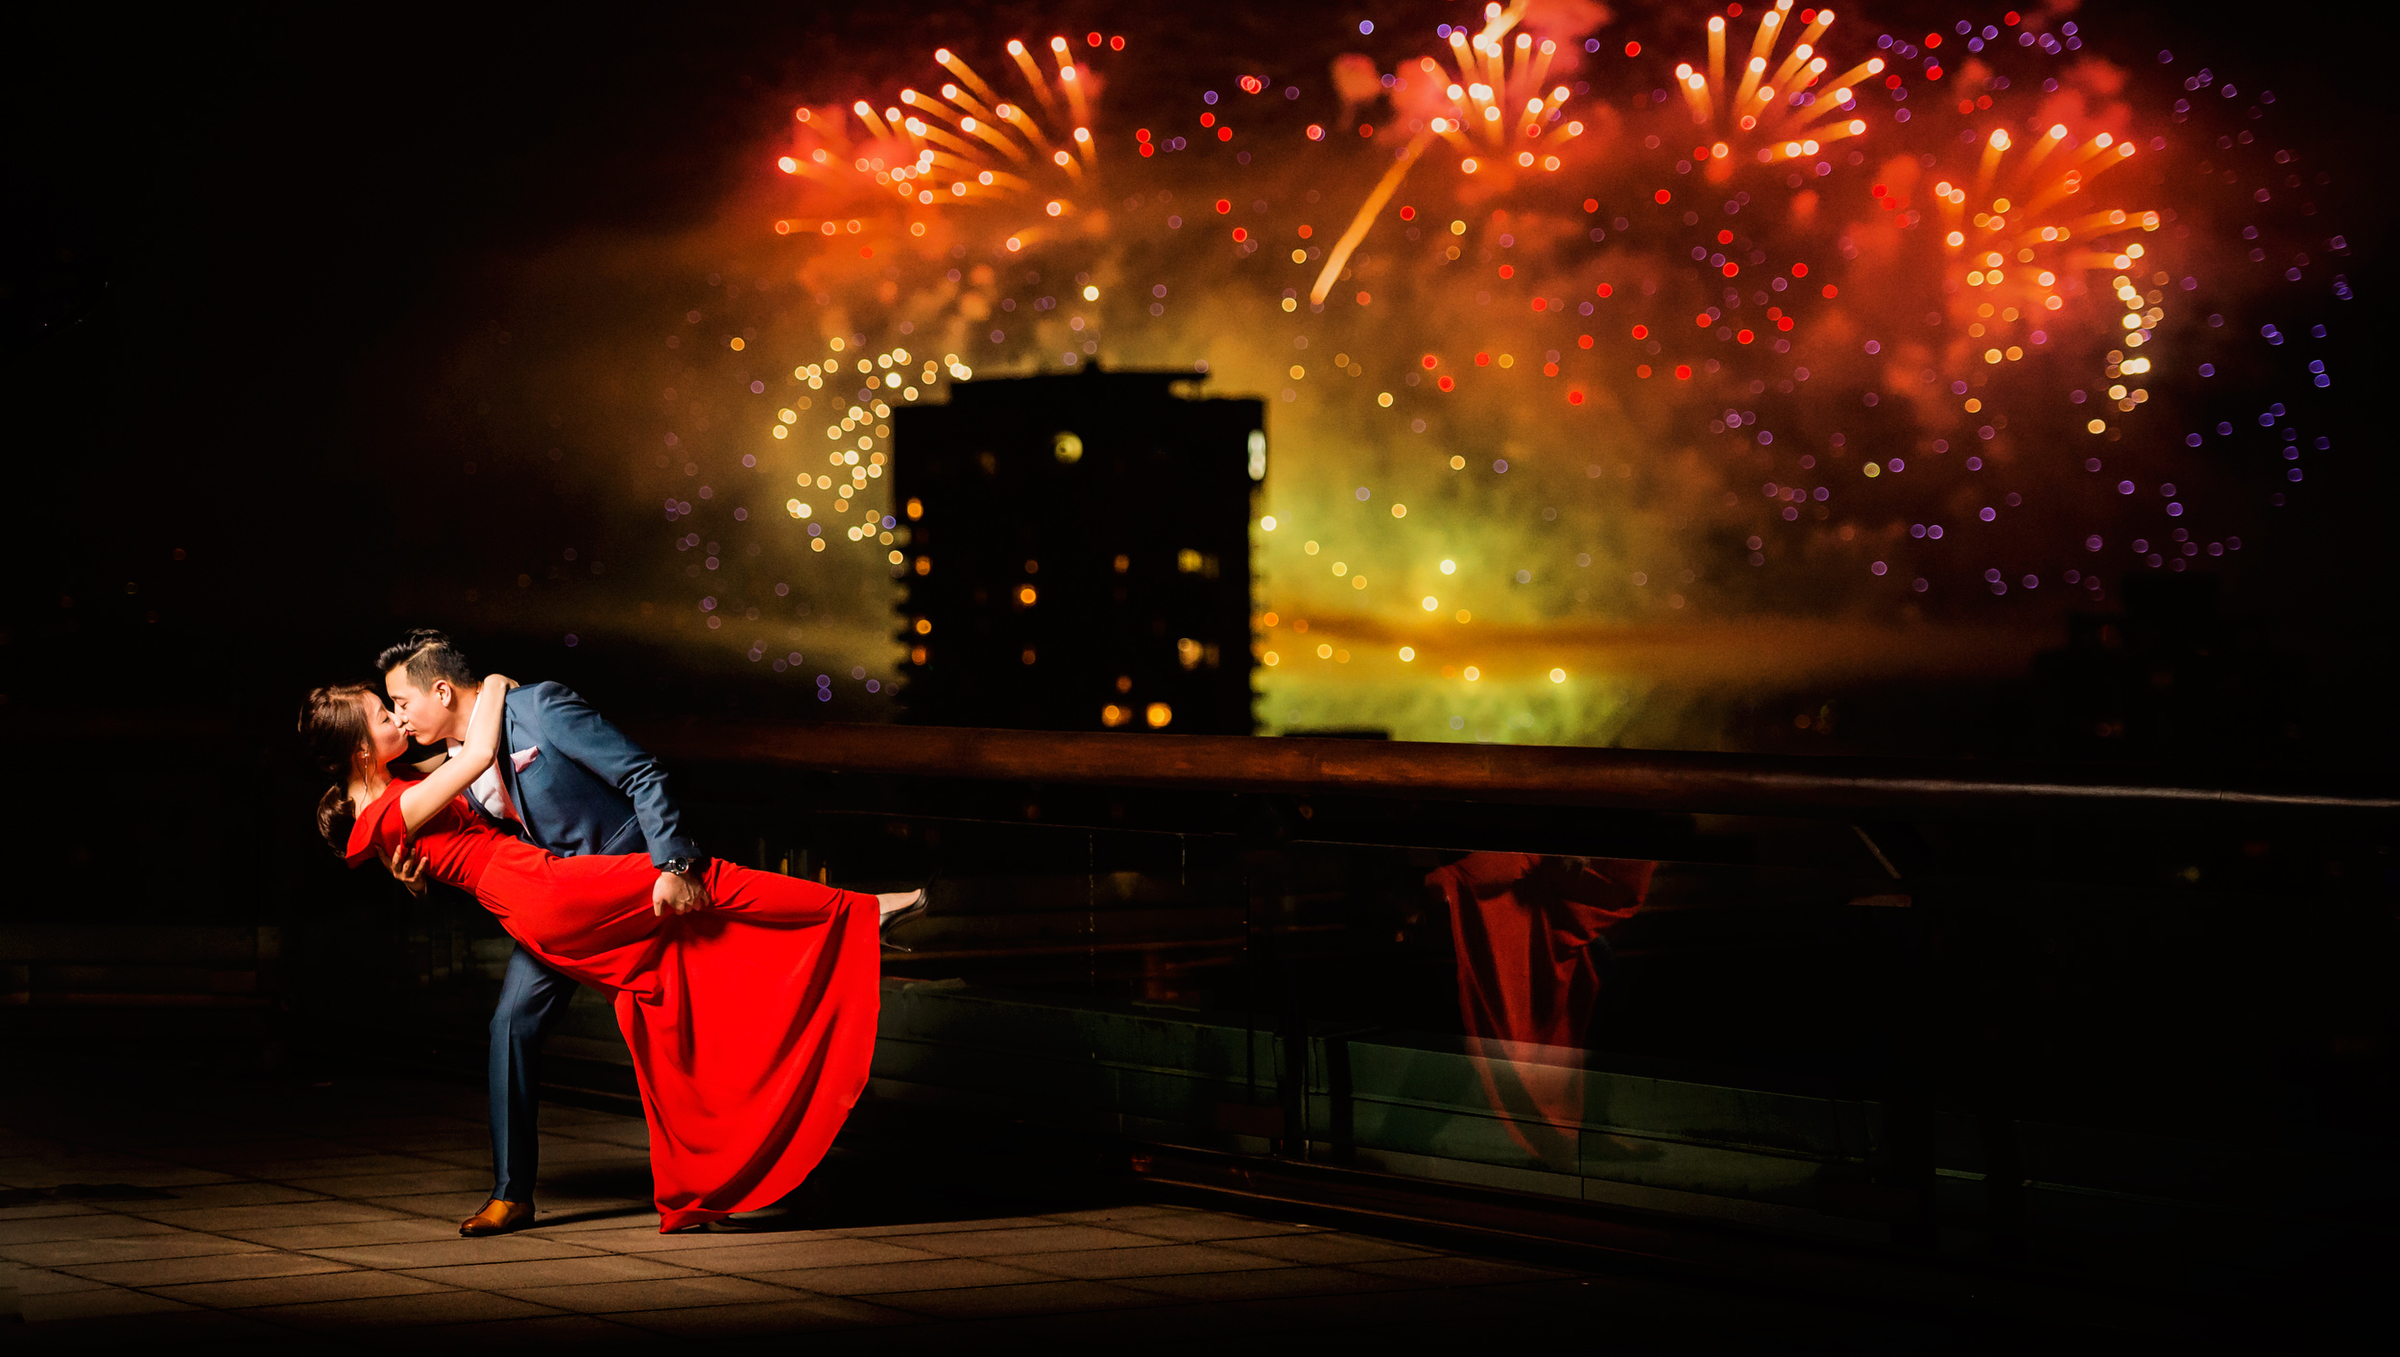 Dramatic engagement kiss against fireworks - photo by Jozef Povazan Photography